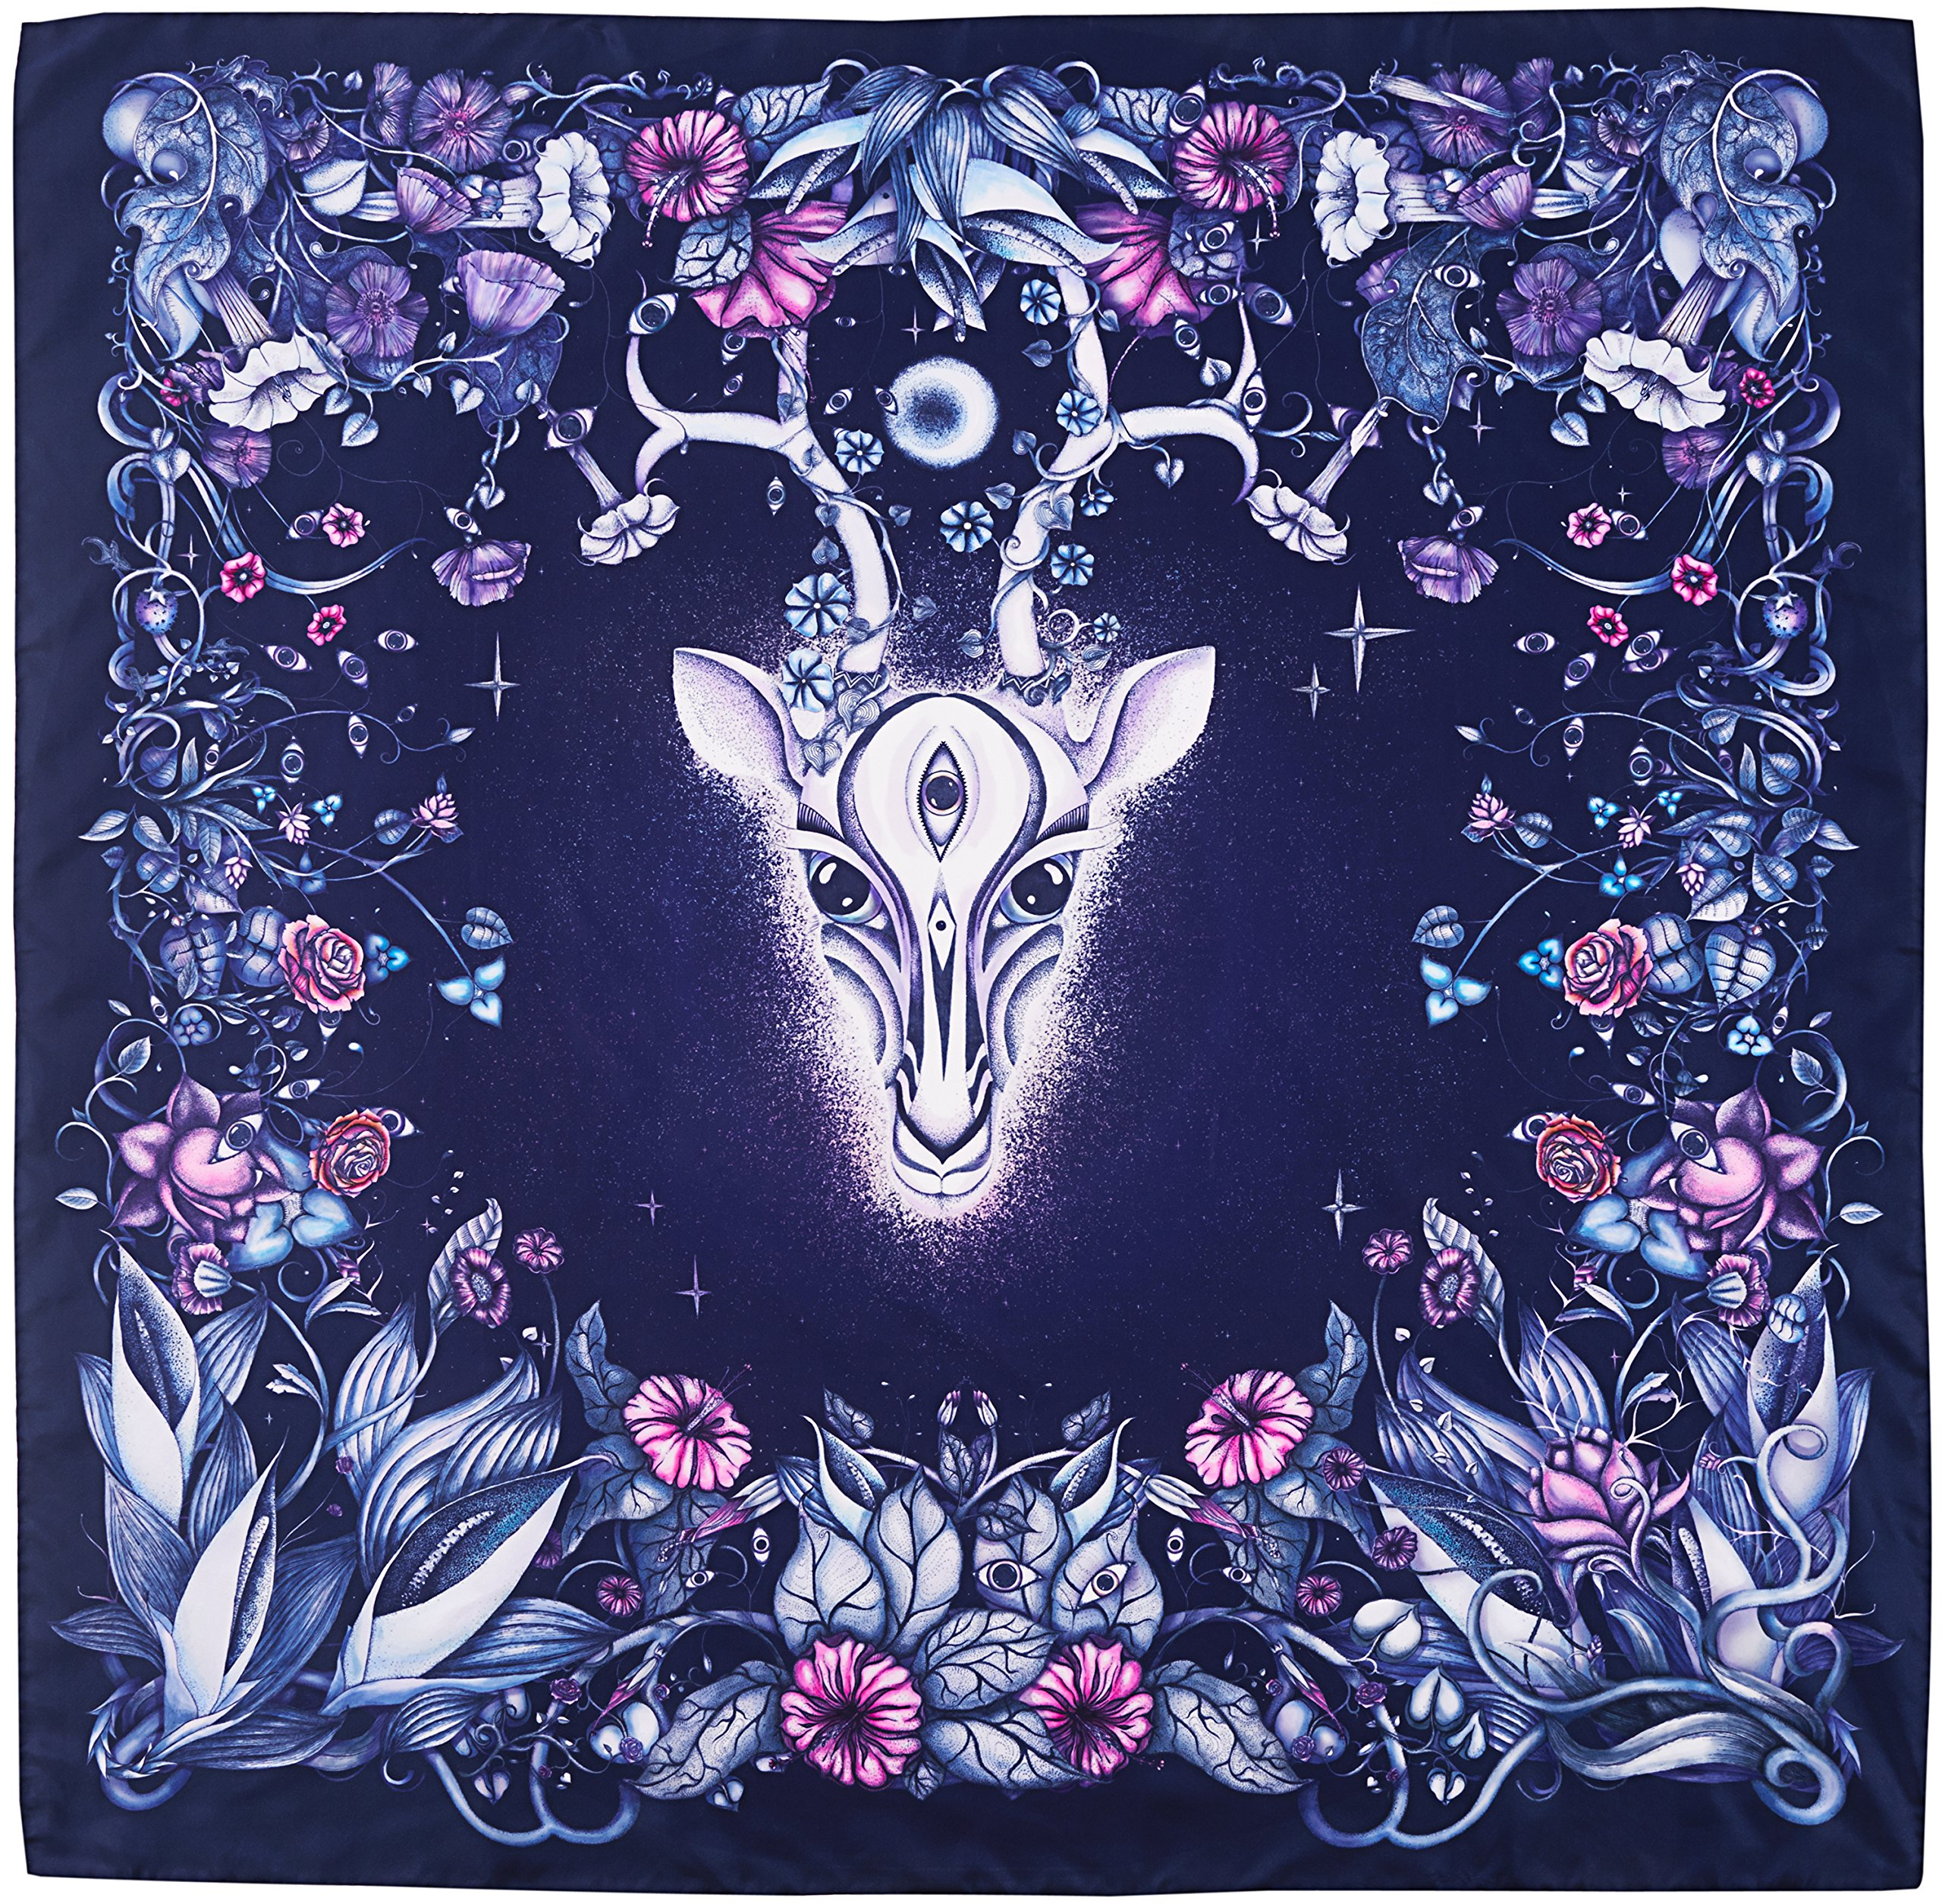 R. Culturi Handmade in Italy Silk Twill Luxury Artwork Scarf Shawl (Navy/Purple) by R. Culturi